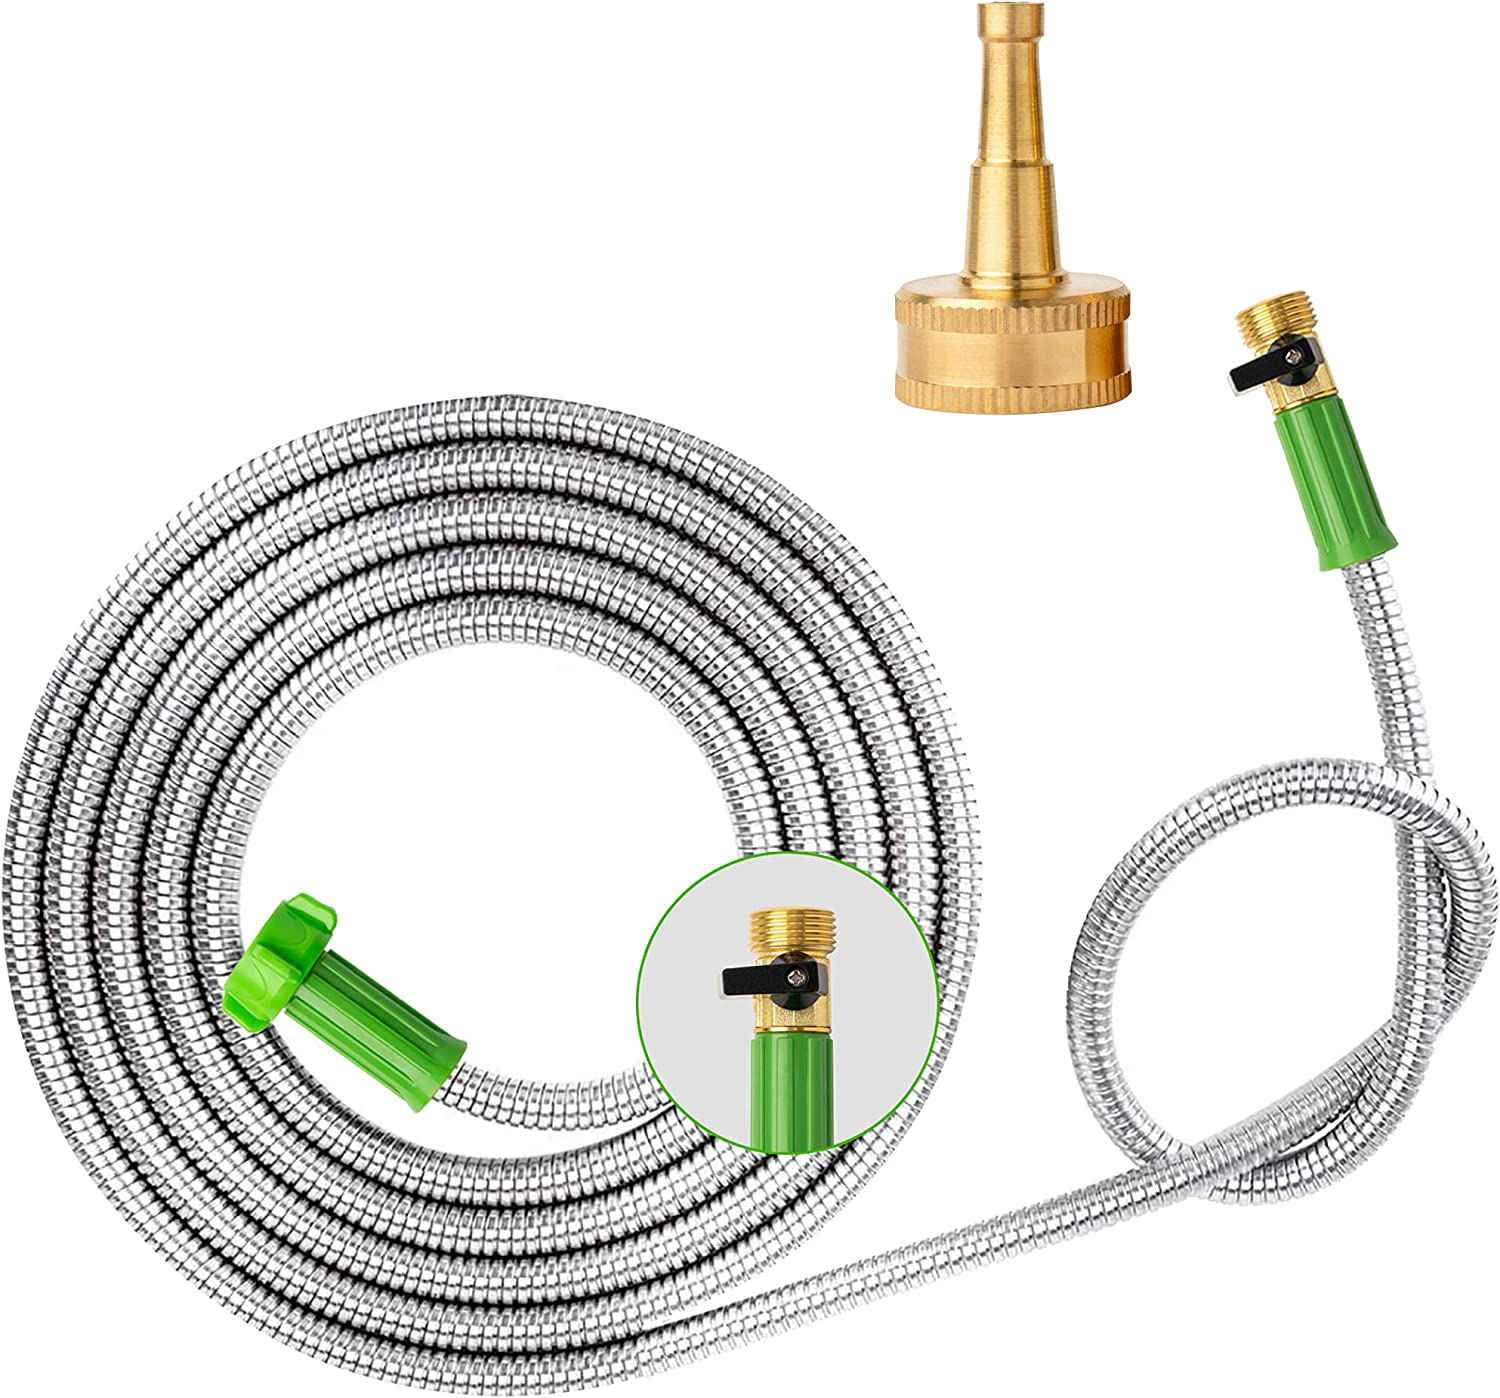 Yanwoo 304 Stainless Steel 6ft Garden Hose with Sprayer Nozzle and ON/OFF Valve, Lightweight, Kink-Free, Heavy Duty Outdoor Hose (6ft)